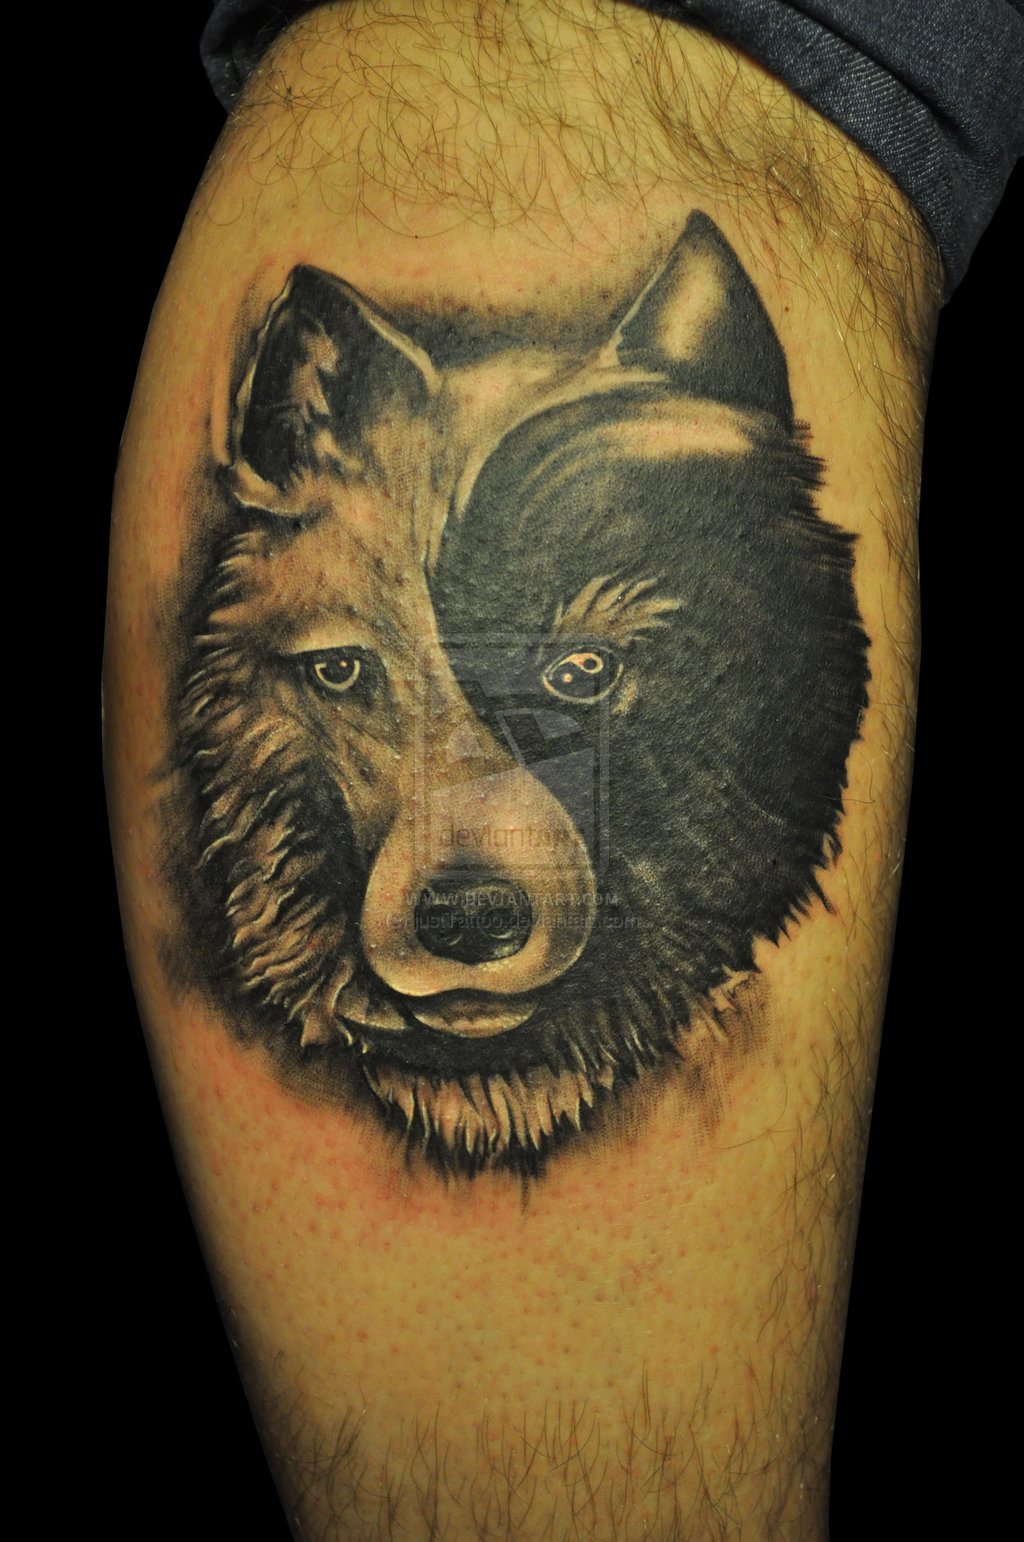 Indian with eagle and wolf tattoo on shoulder tattooimages biz - Yin Yang Wolf Tattoo